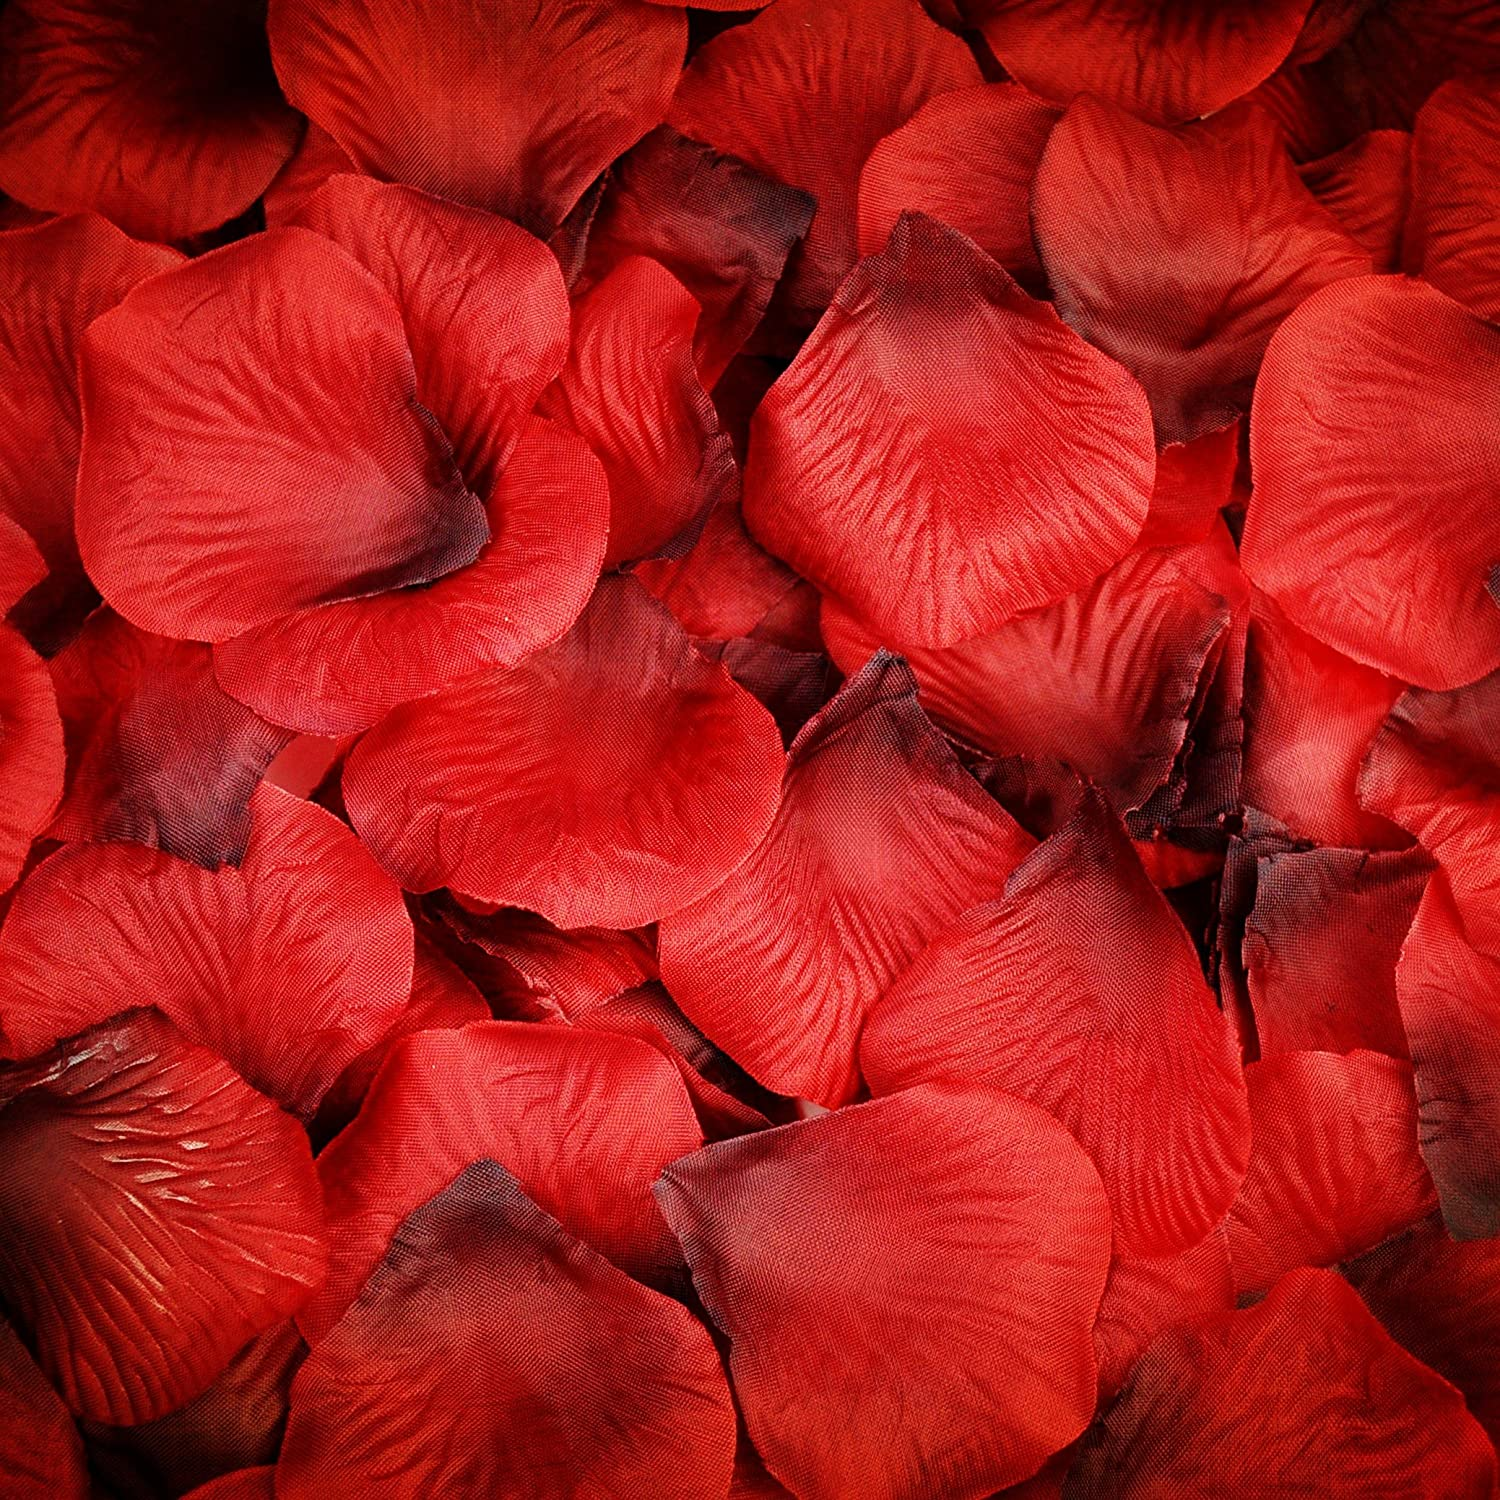 dark red Best Quality 1000 pcs Silk Rose Petals Wedding Party Decorations Flower Favors